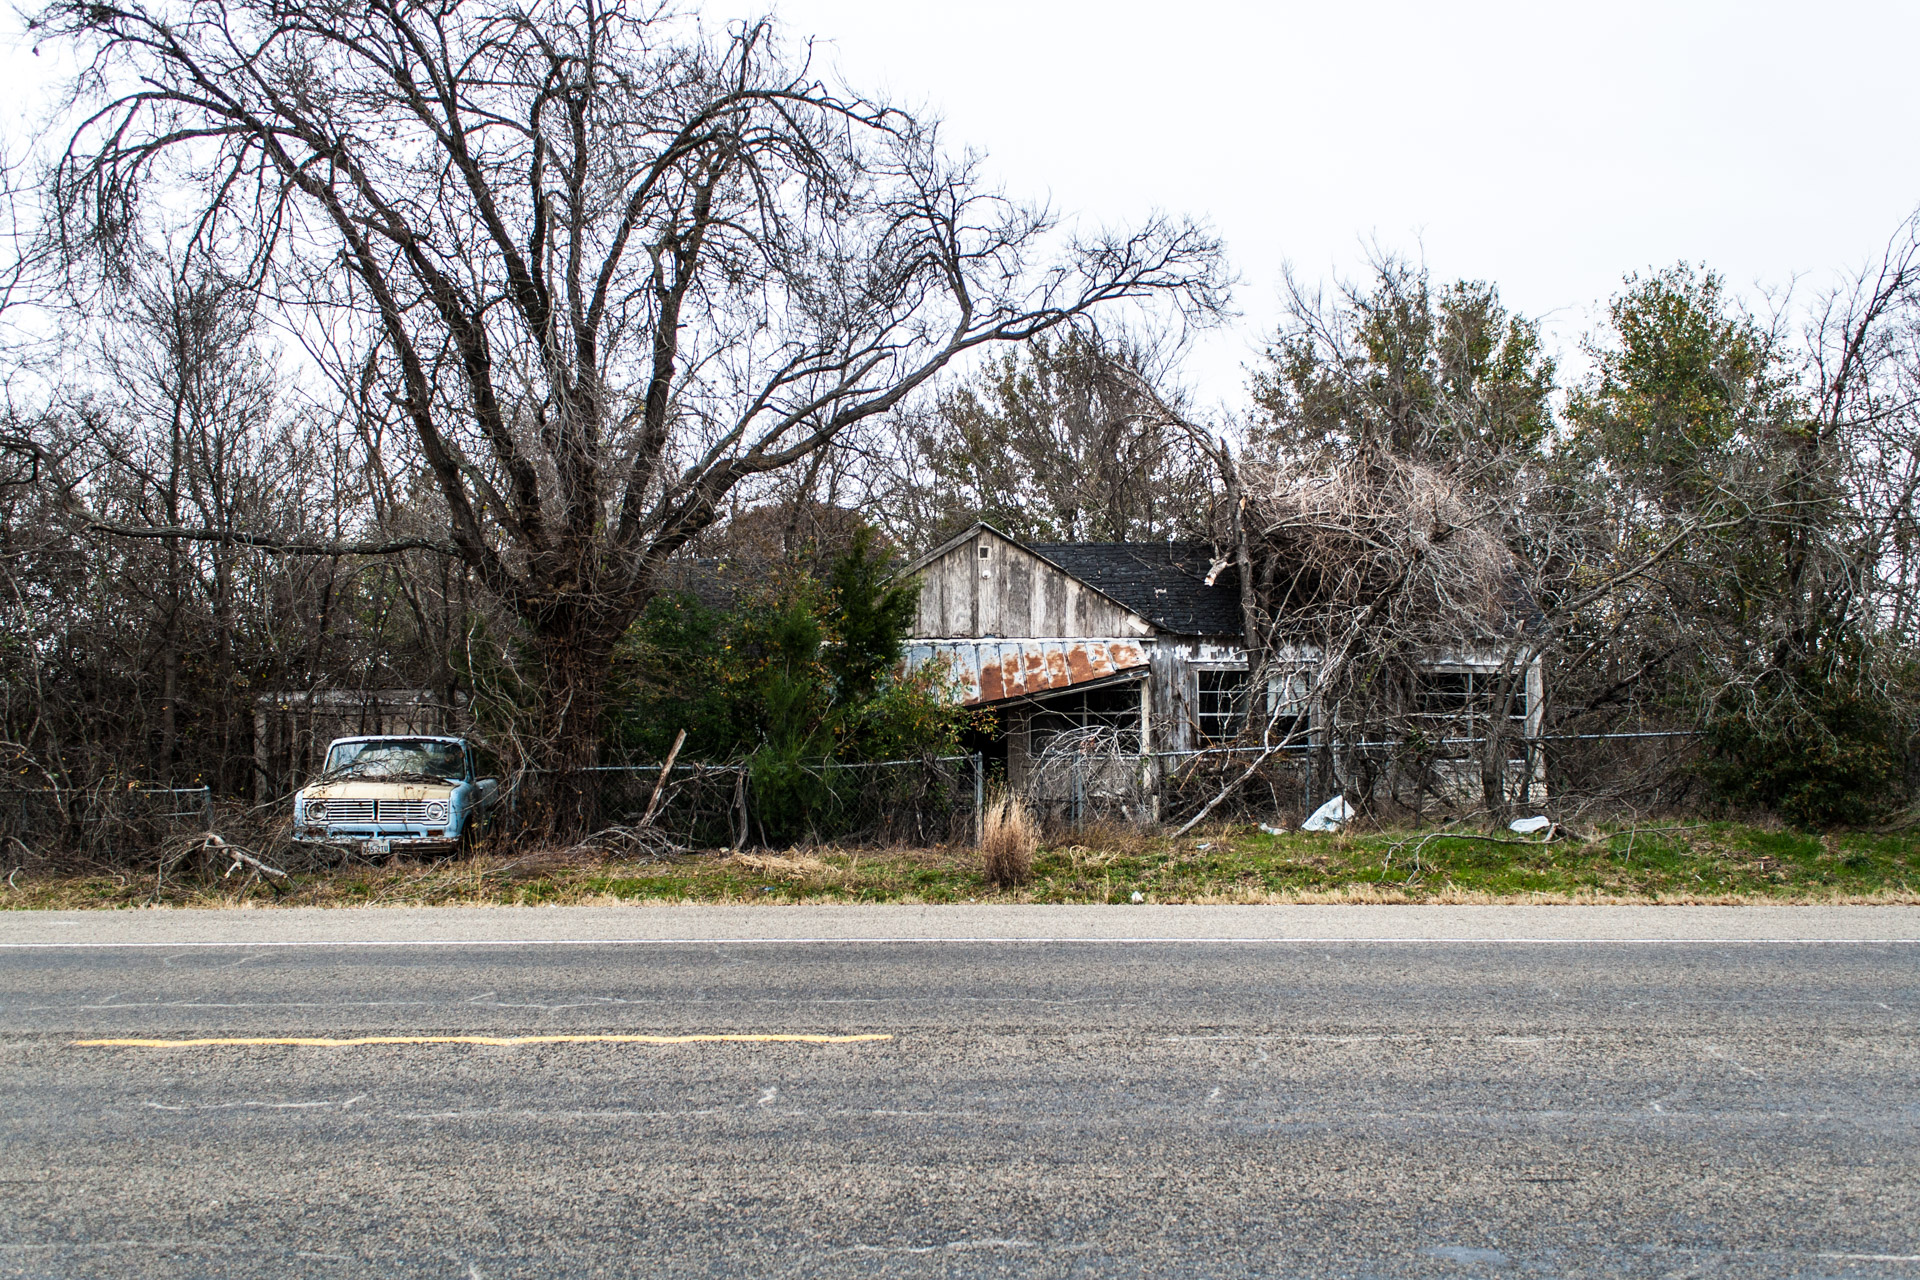 Reagan, Texas - A Branchy House and Truck (front far)